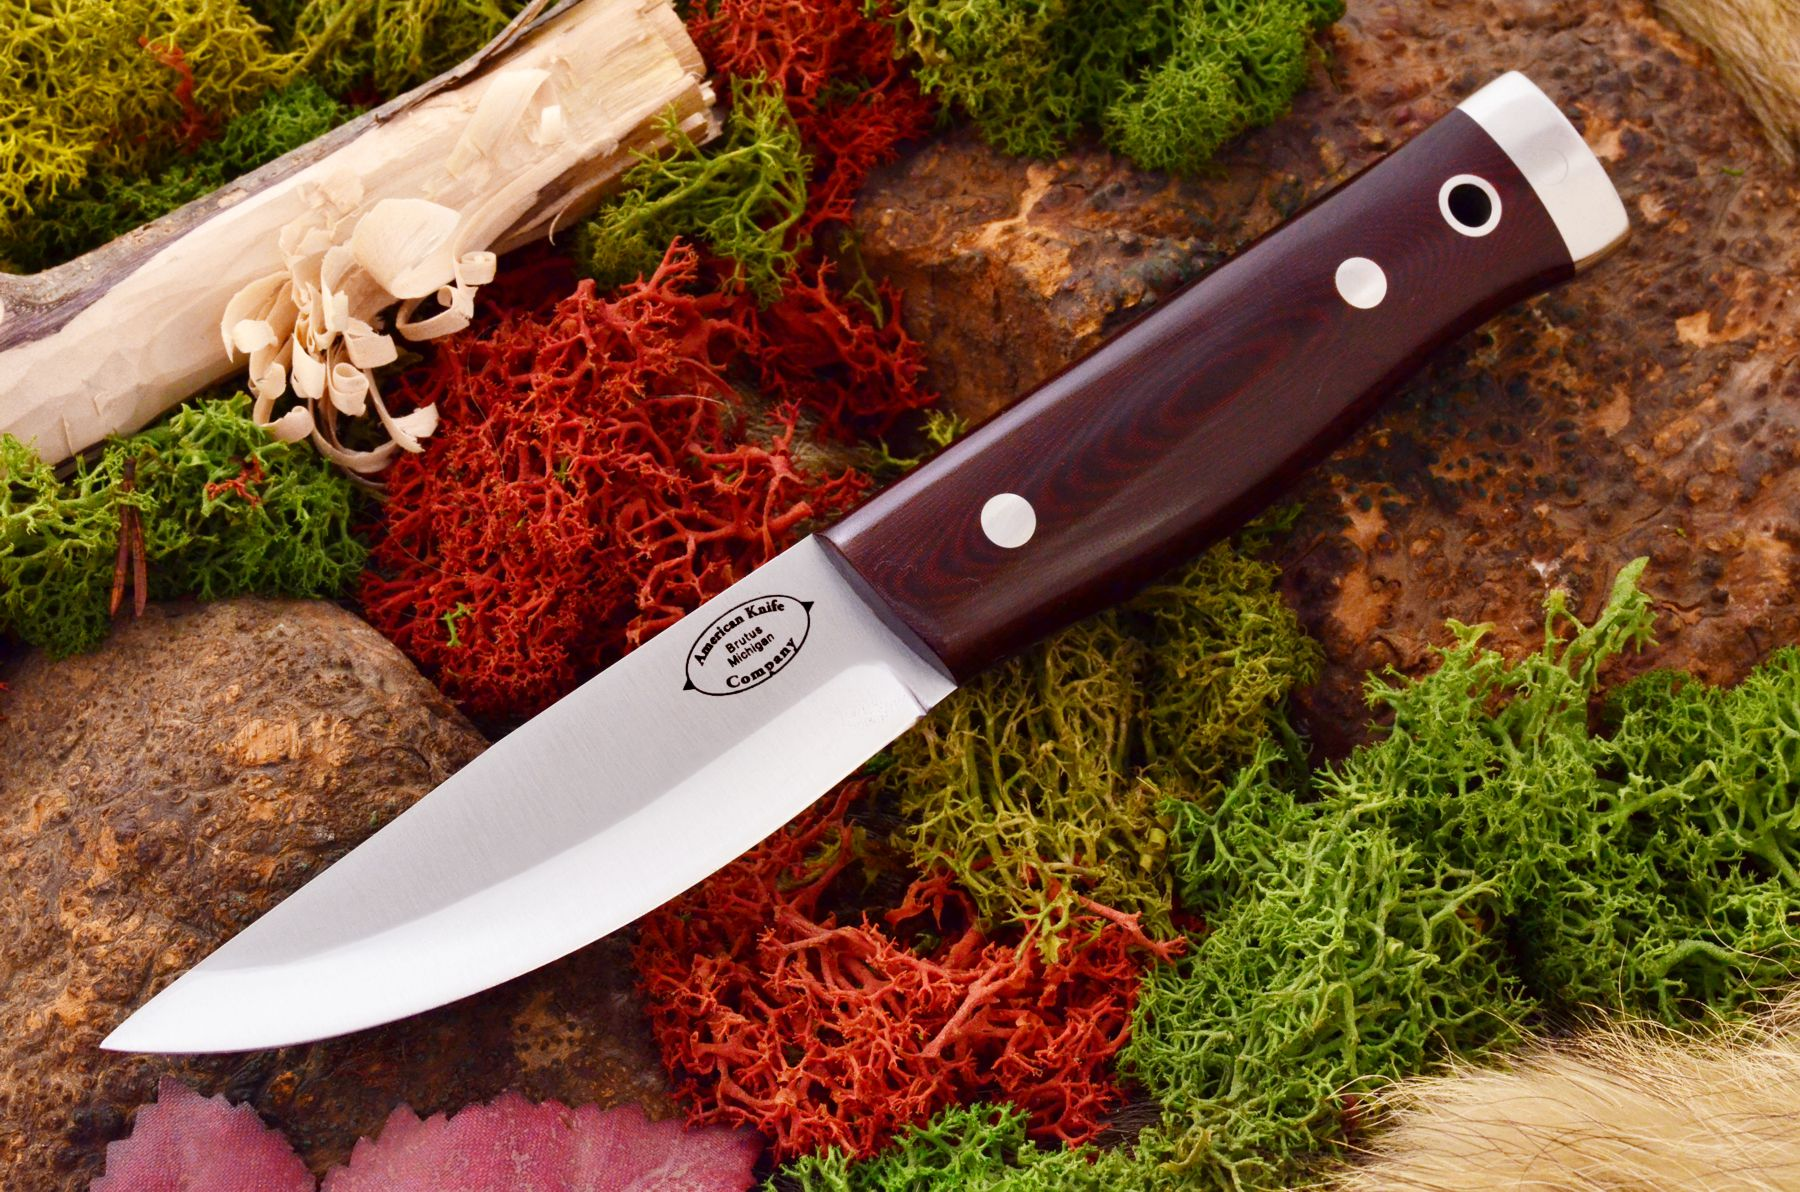 akc forest compact maroon linen micarta 329.95